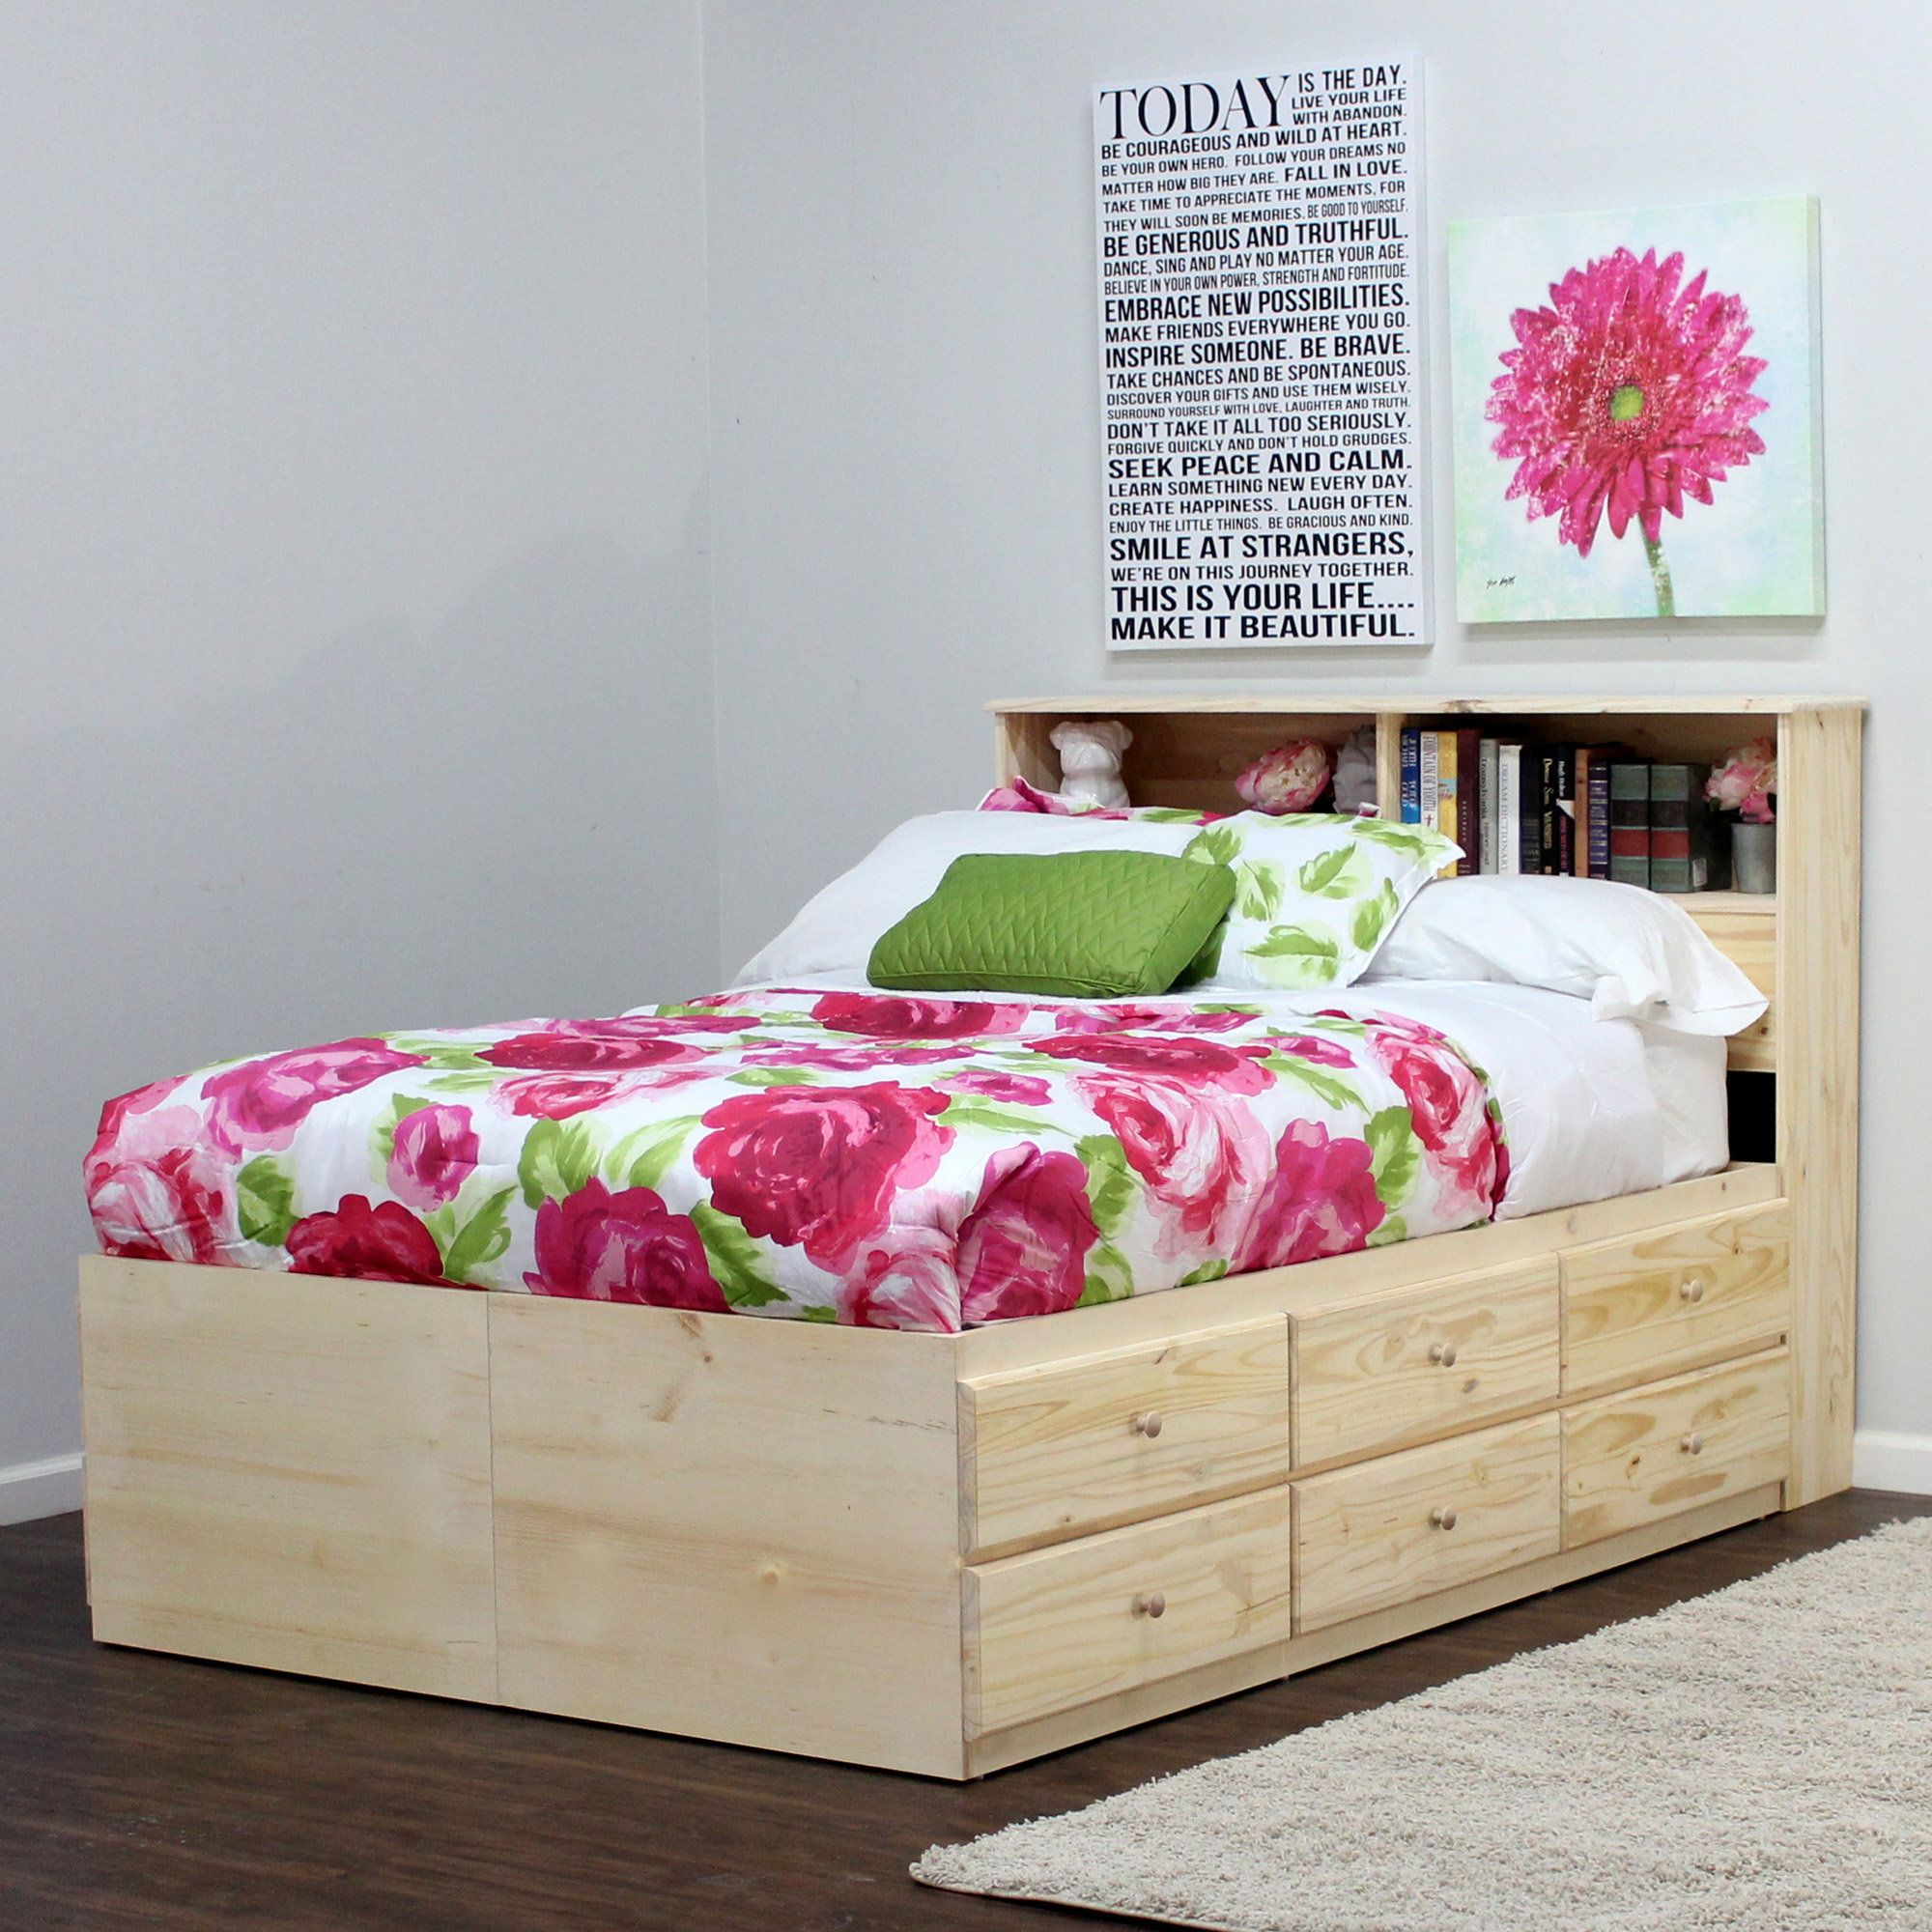 Gothic Furniture Mate and Captain Bed With Drawers